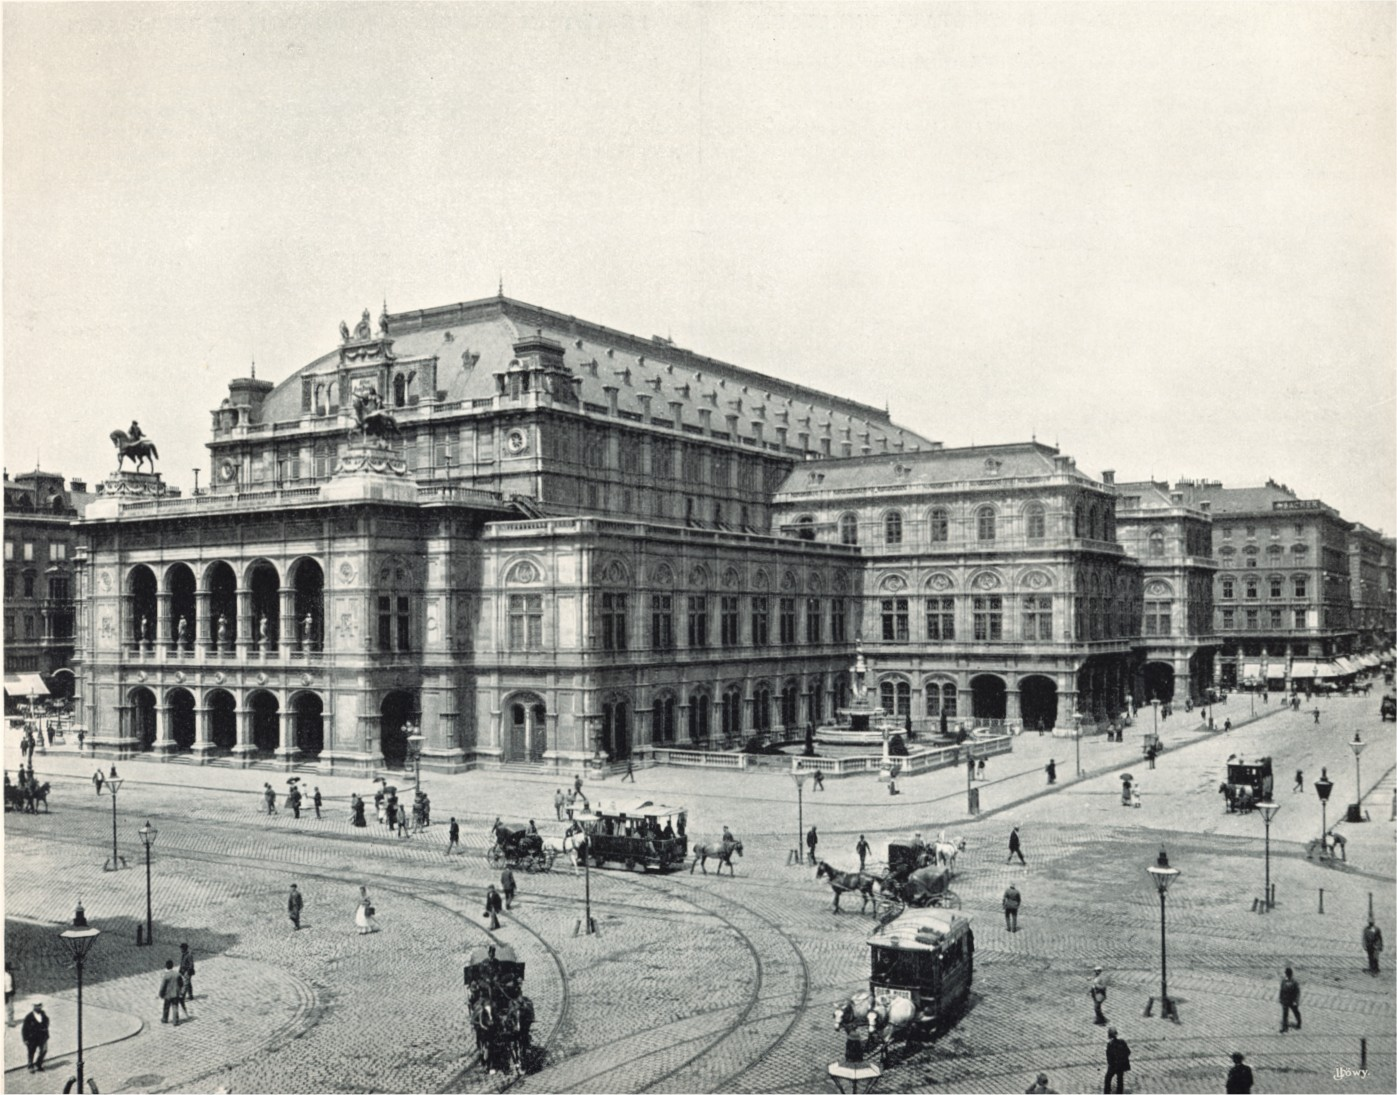 https://upload.wikimedia.org/wikipedia/commons/1/16/Staatsoper_(ca.1898).jpg